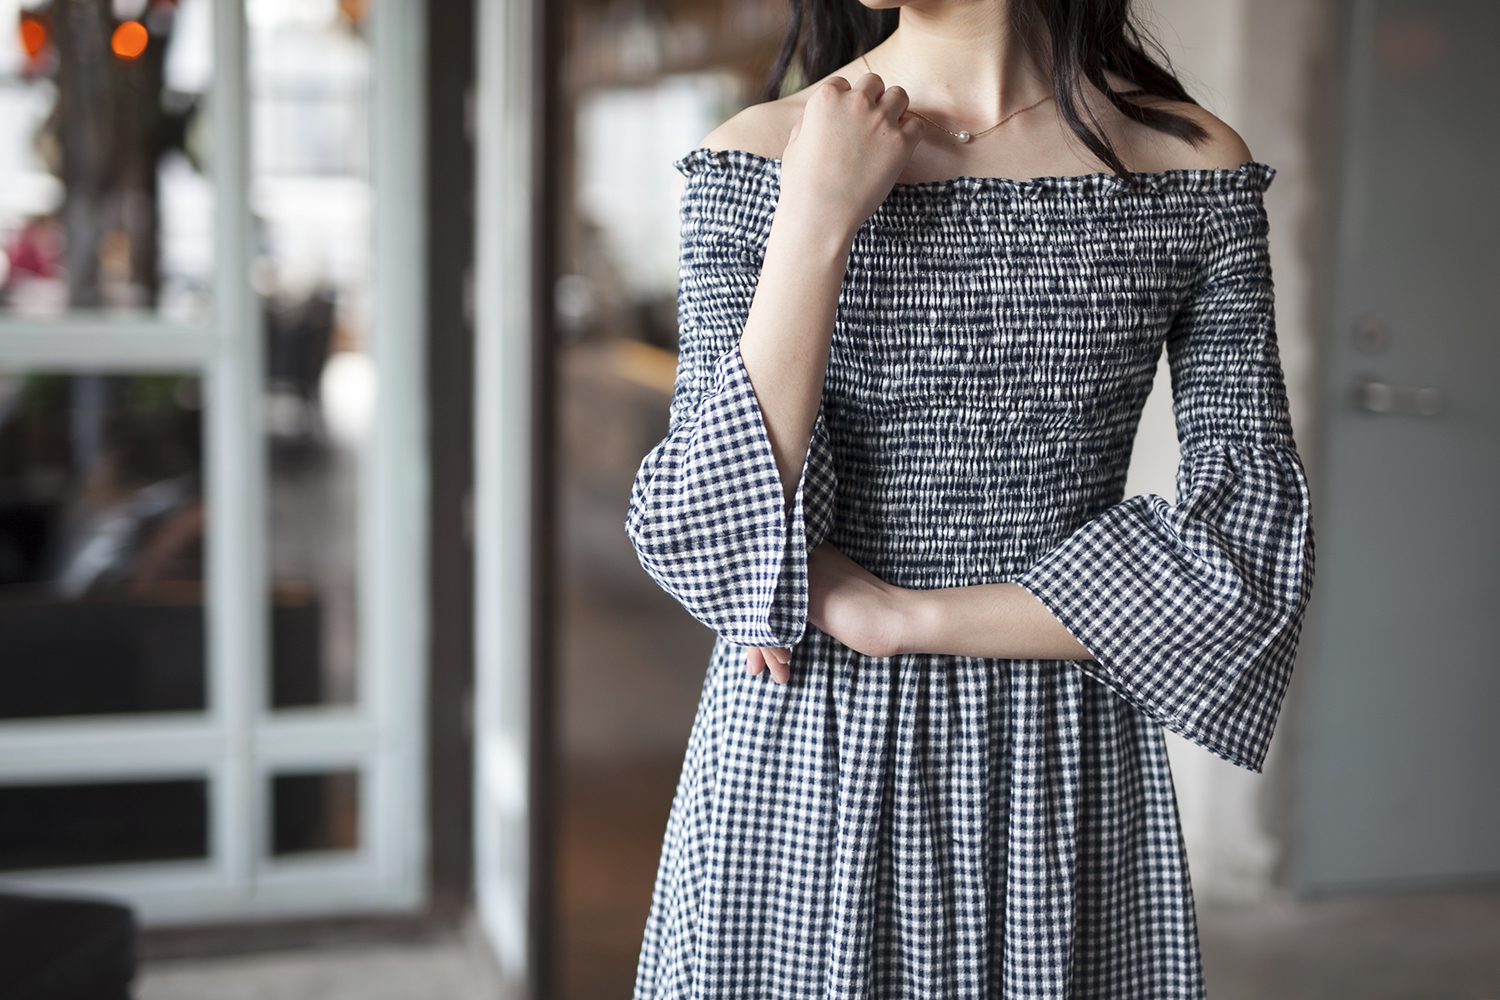 No.9 Wuyi Lane spring / summer new one shoulder off the shoulder flared sleeve dress pure cotton pastoral lattice